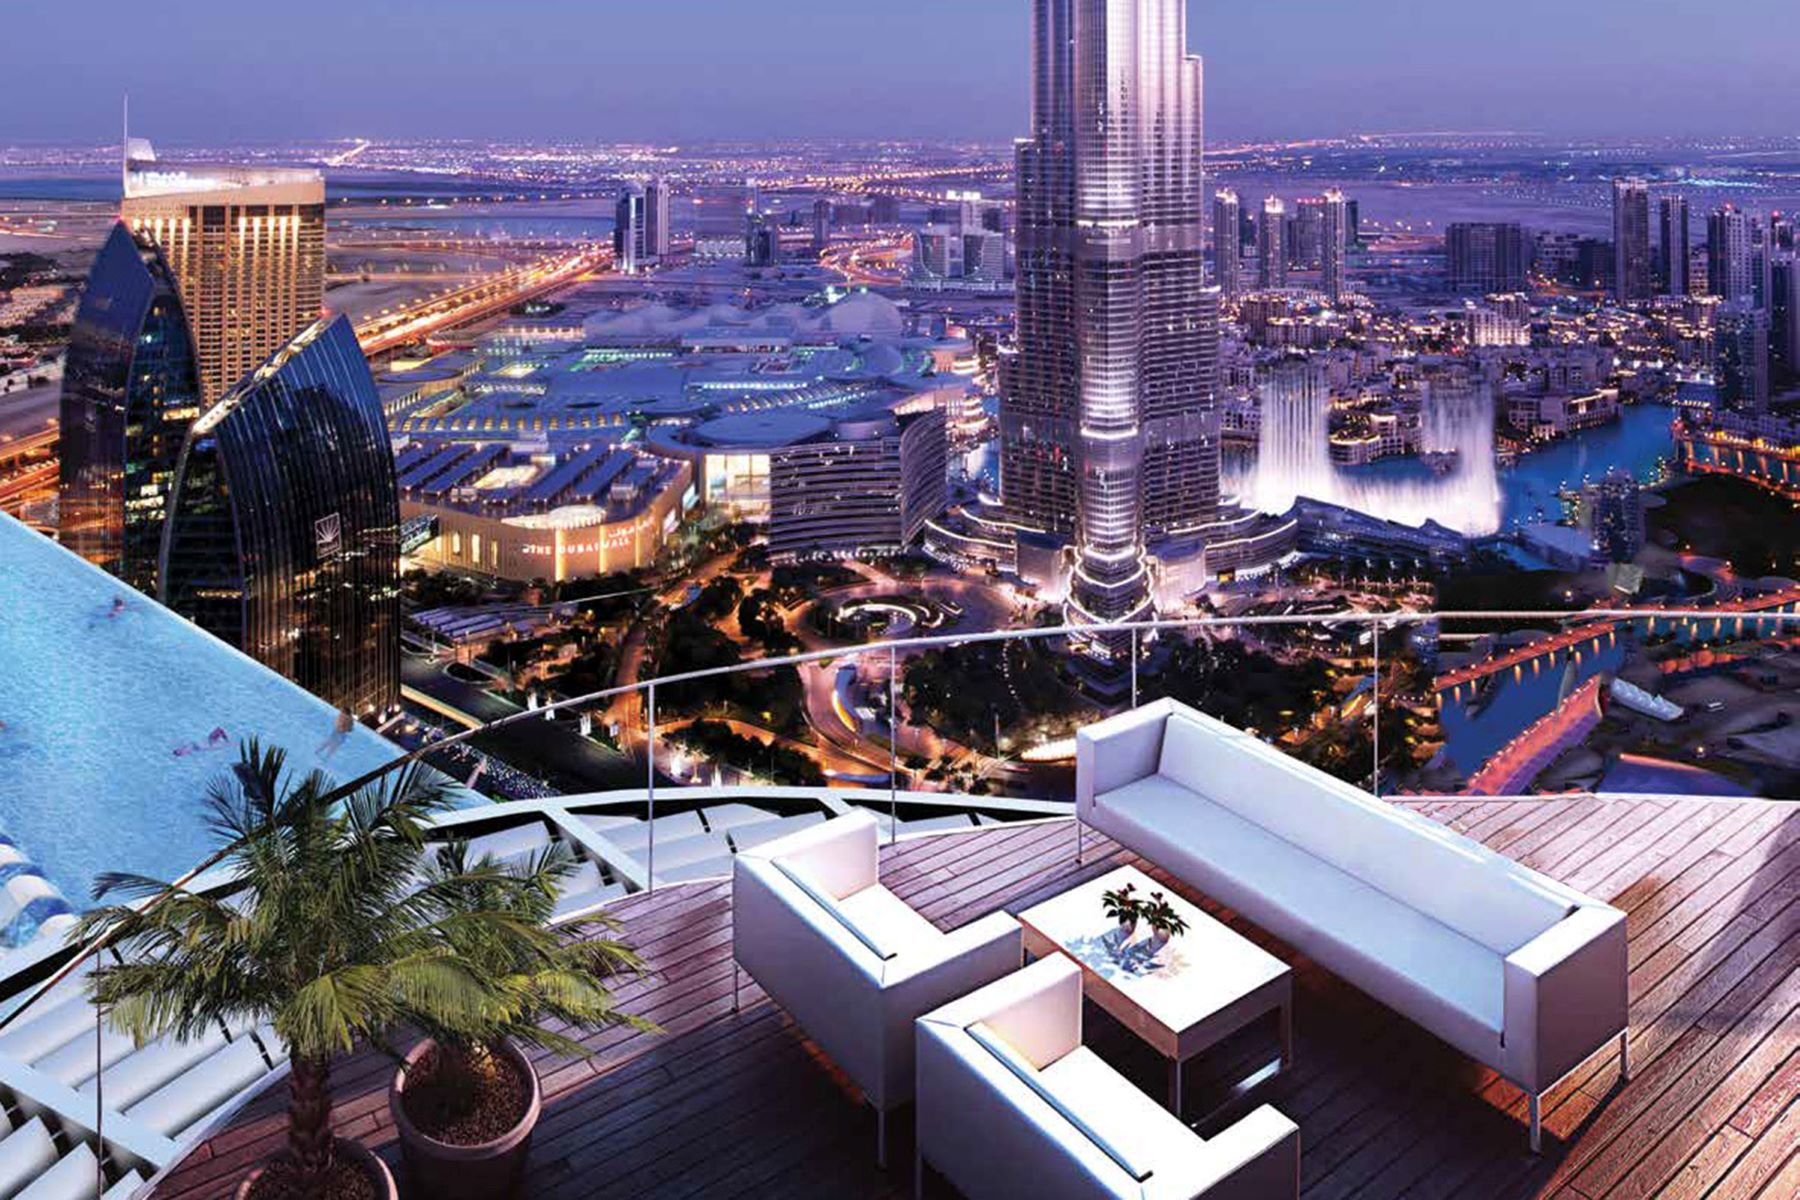 Apartment for Sale at 4-bed Penthouse for Sale on Payment Plan Downtown Dubai The Address Sky View Dubai, Dubai 00000 United Arab Emirates